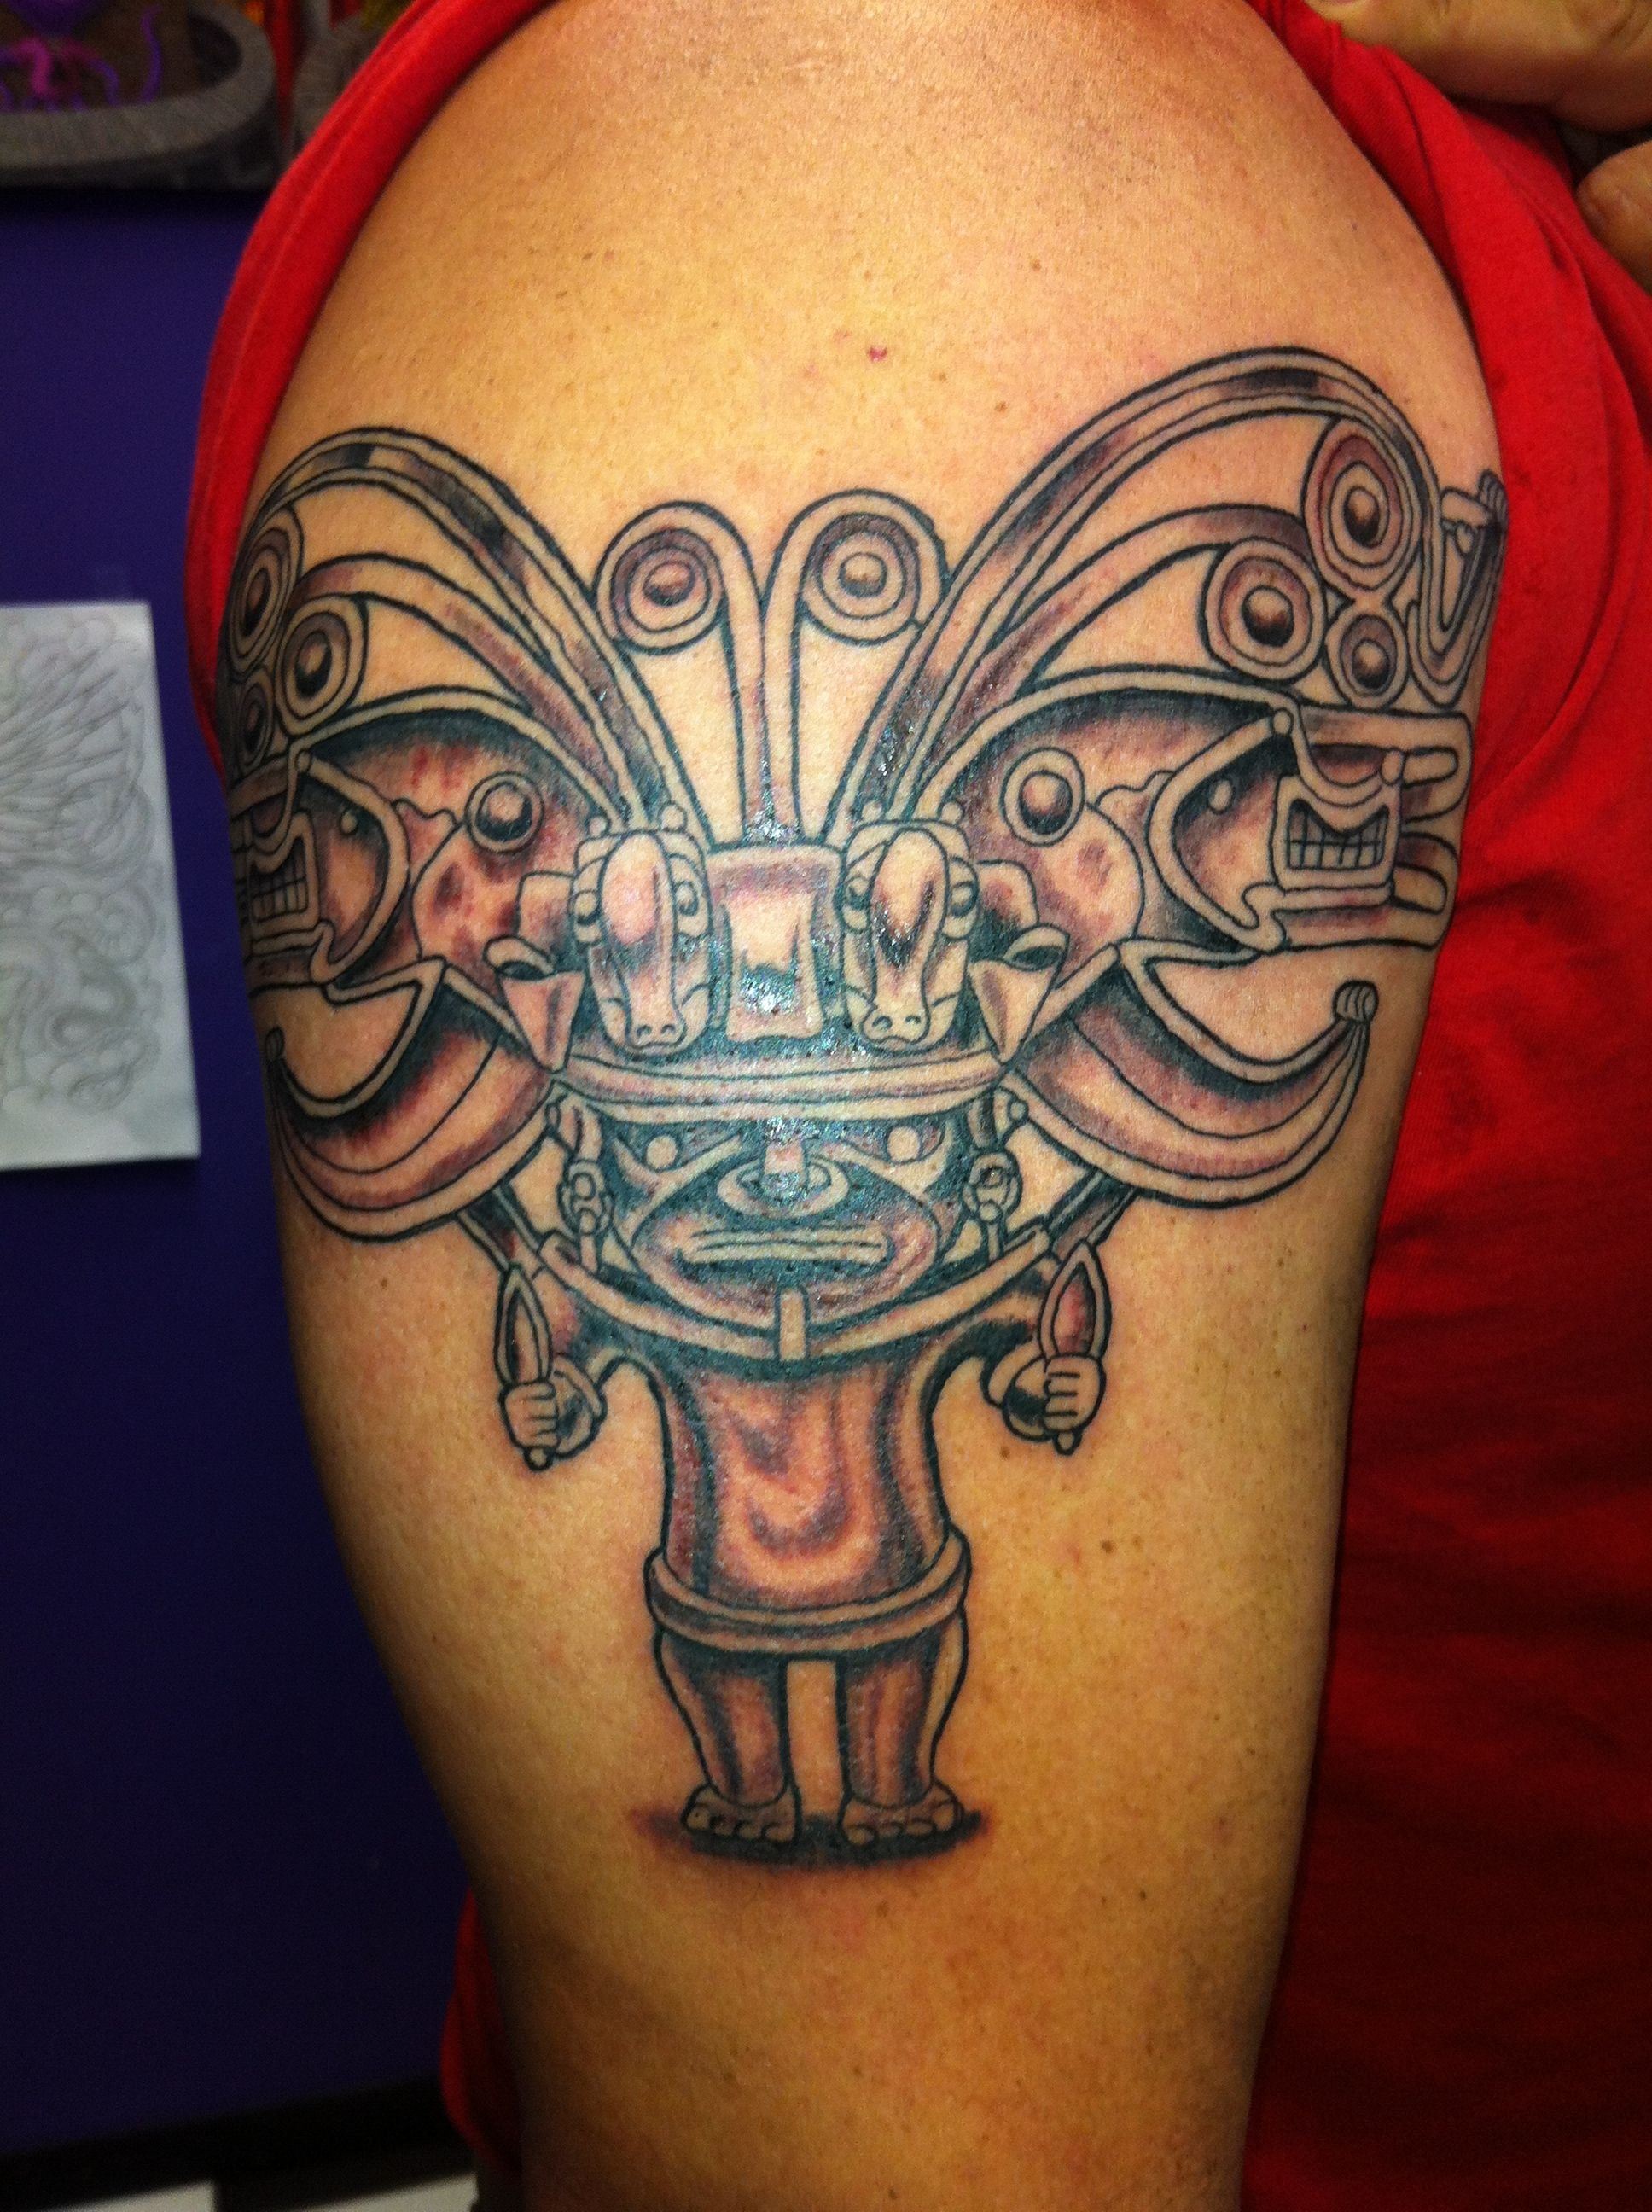 Colombian Tribal Tattoo : colombian, tribal, tattoo, Colombian, Tattoo, Heritage, South, America., Designs, Meanings,, Aztec, Tattoo,, Tattoos